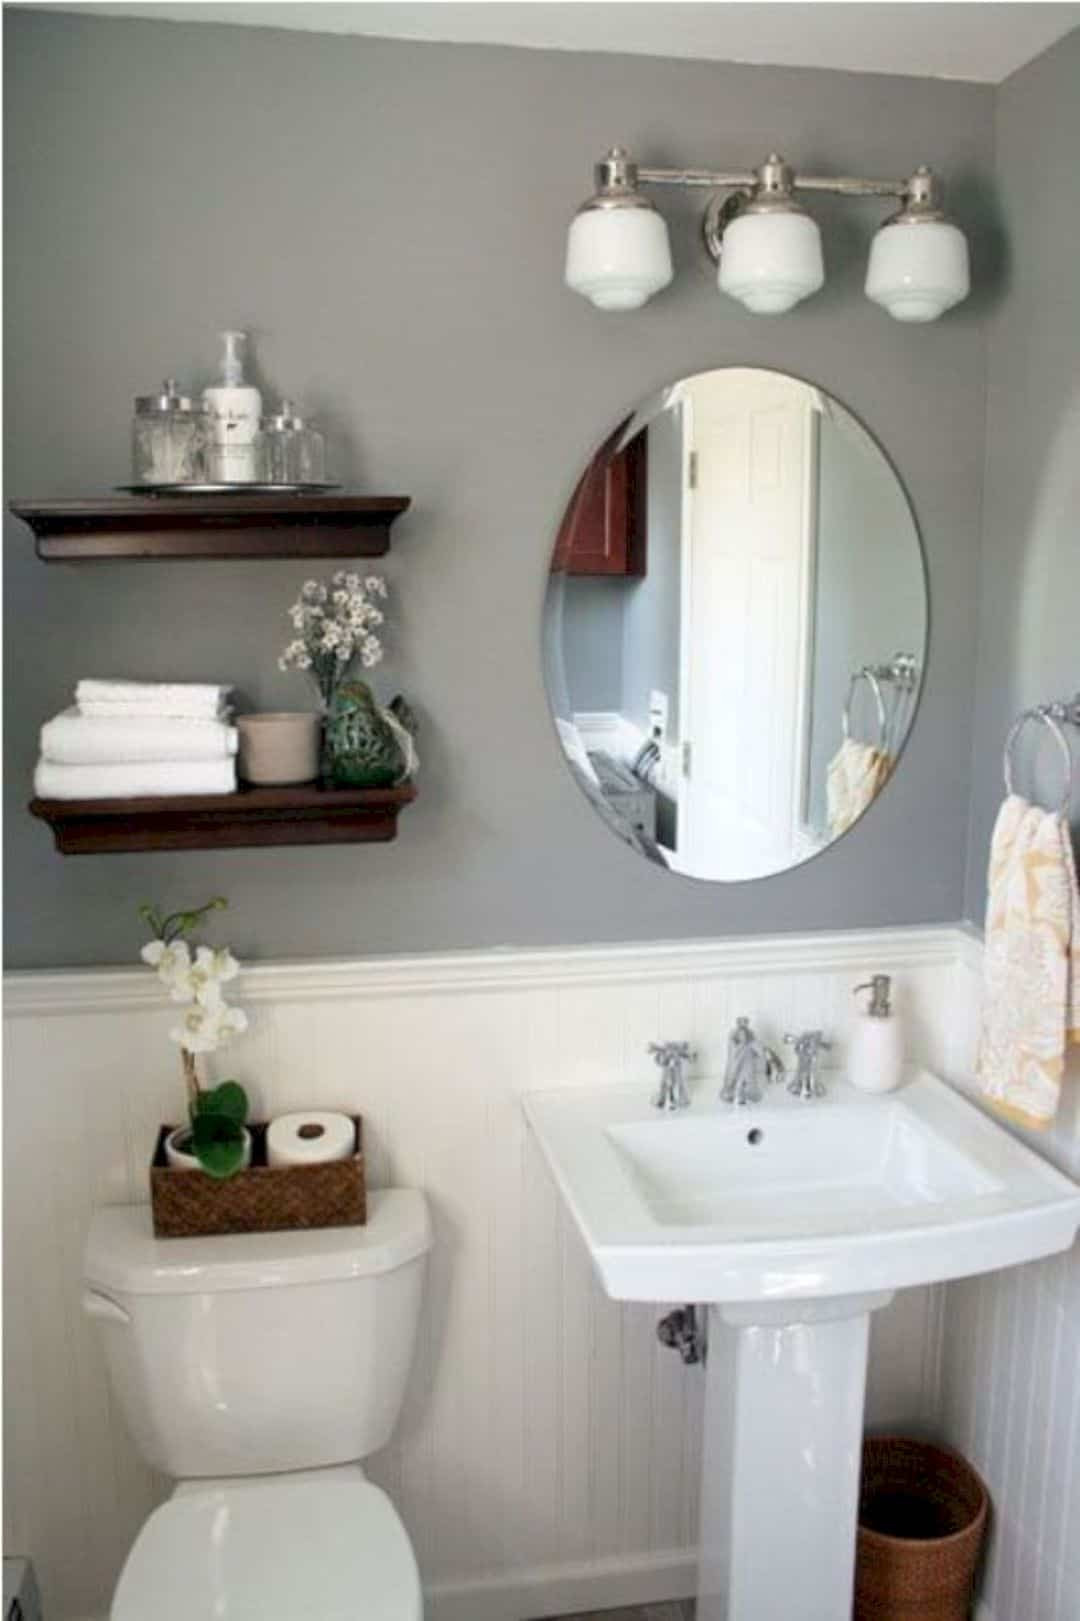 Ideas for Bathroom Decorations Luxury the Best Ideas for Bathroom Decoration Ideas Best Interior